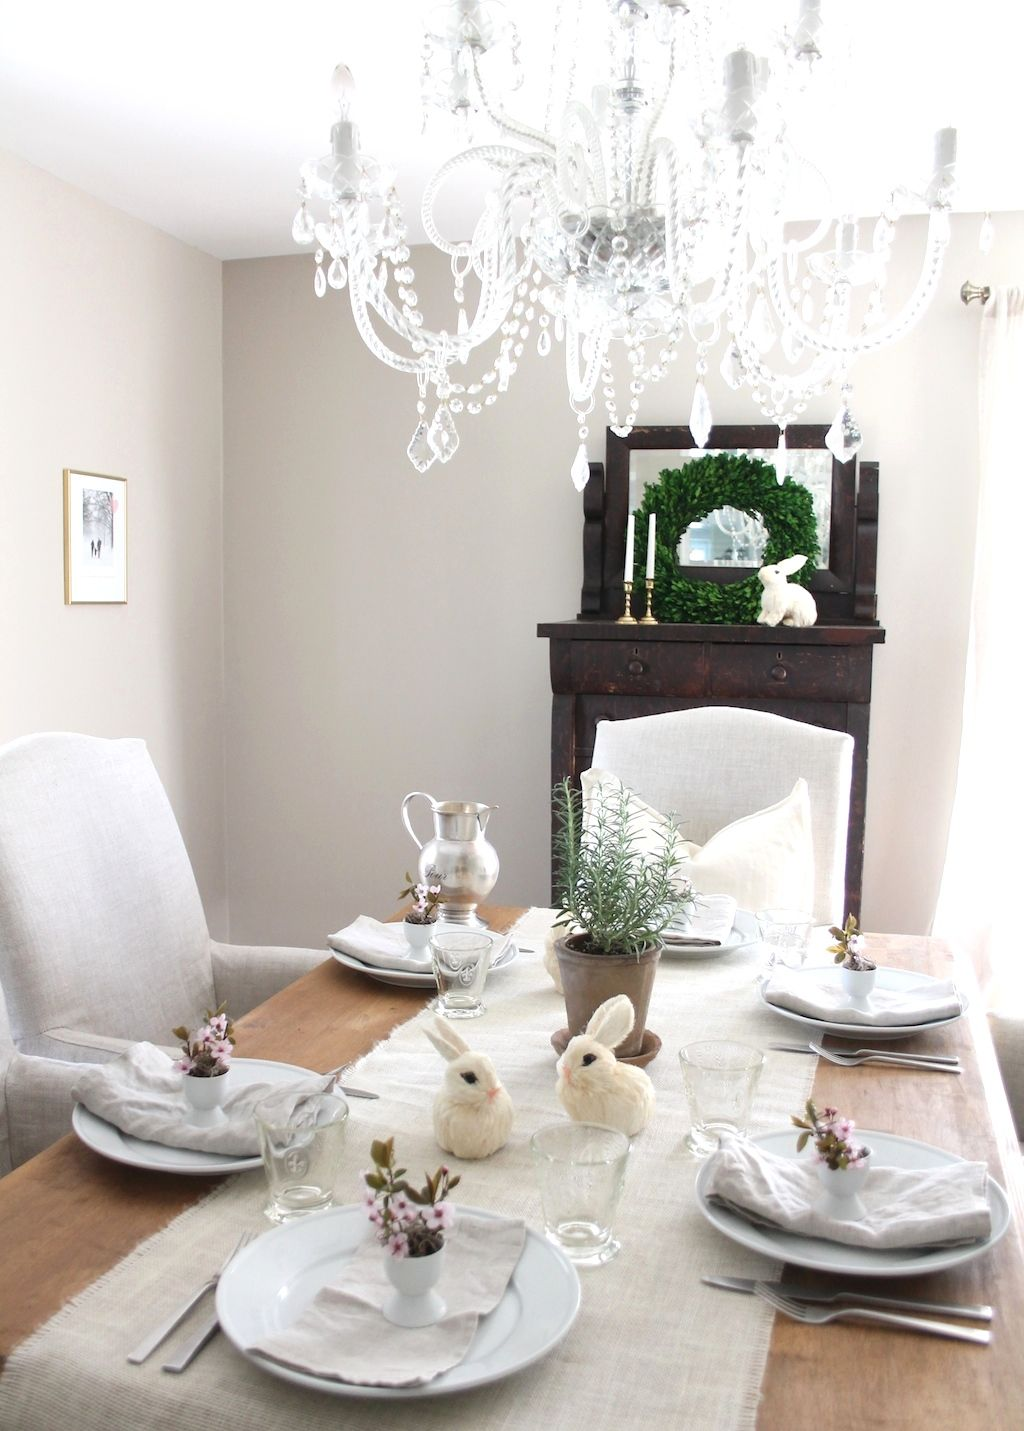 Easy Easter table setting | inspiring home ideas by bloggers ...